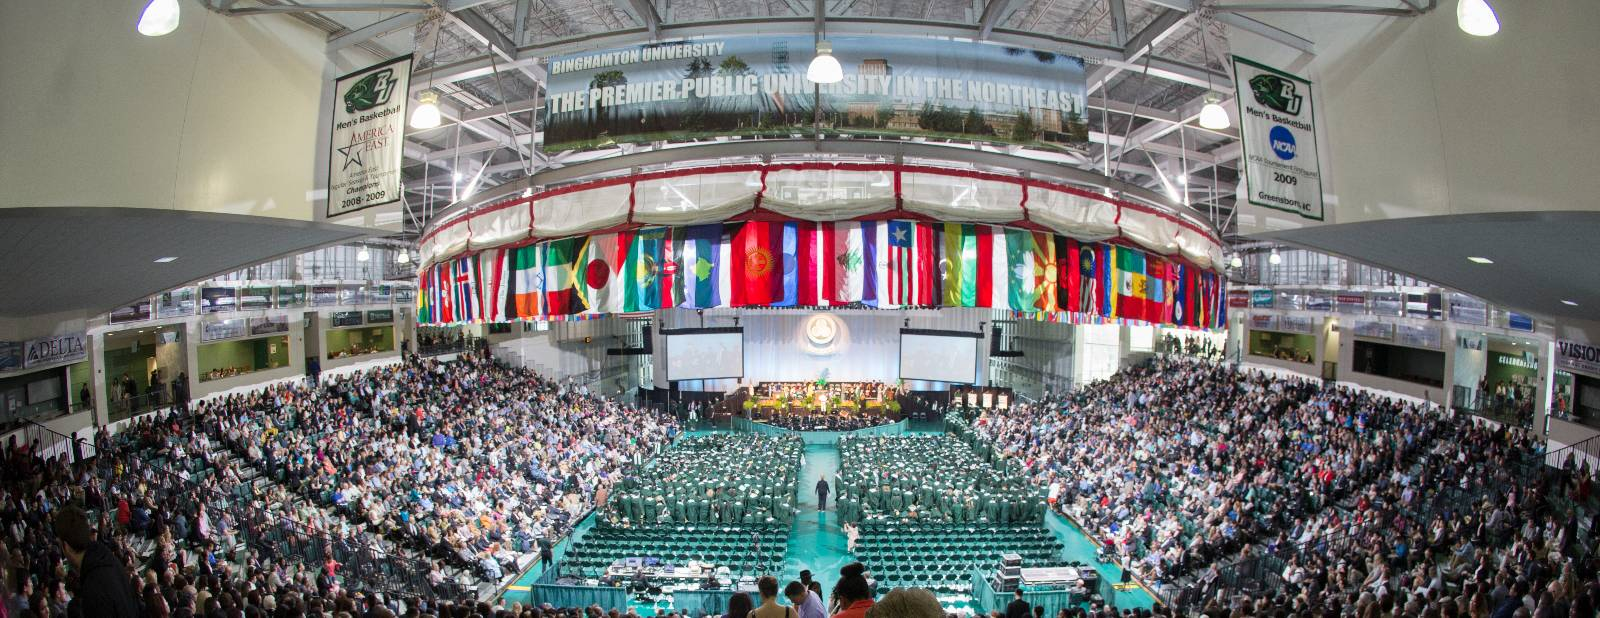 Binghamton University Calendar 2020 Schedule of Events   Commencement | Binghamton University